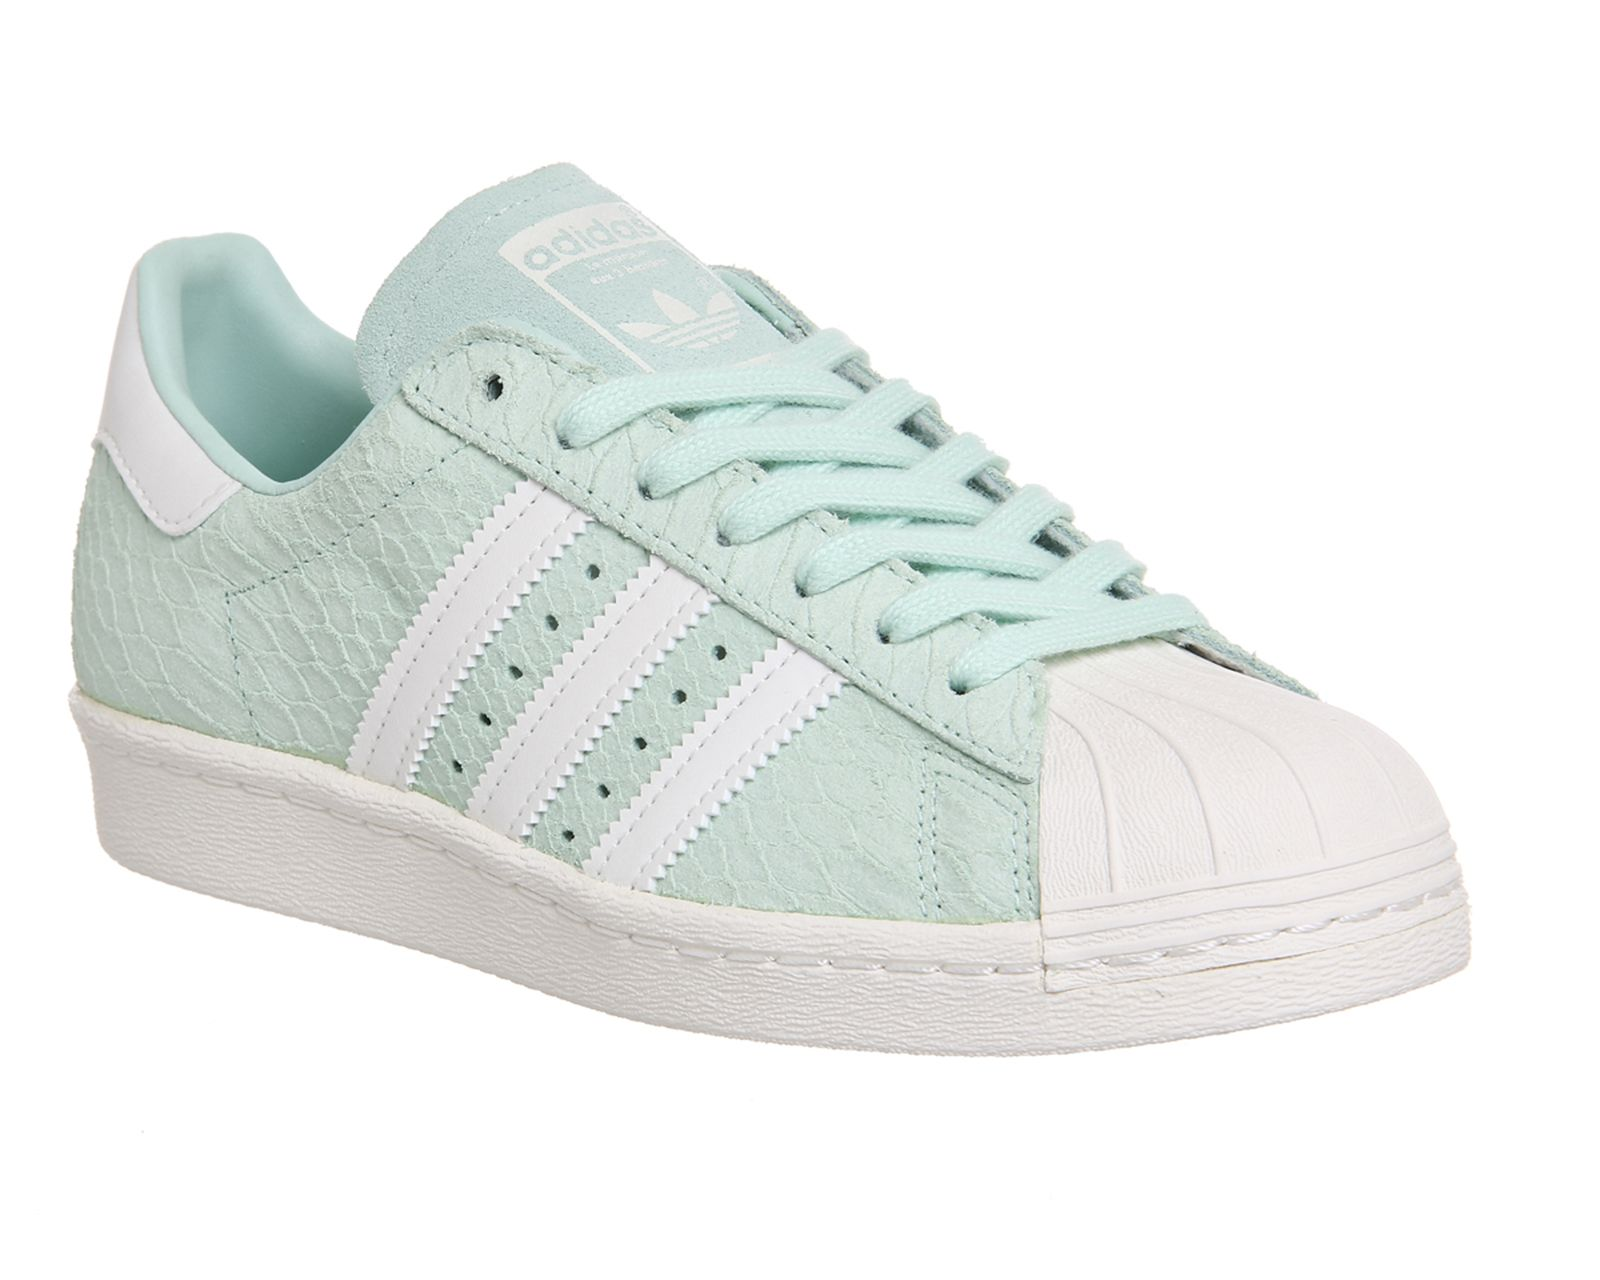 Adidas Superstar (w) Frost Green White - Hers trainers